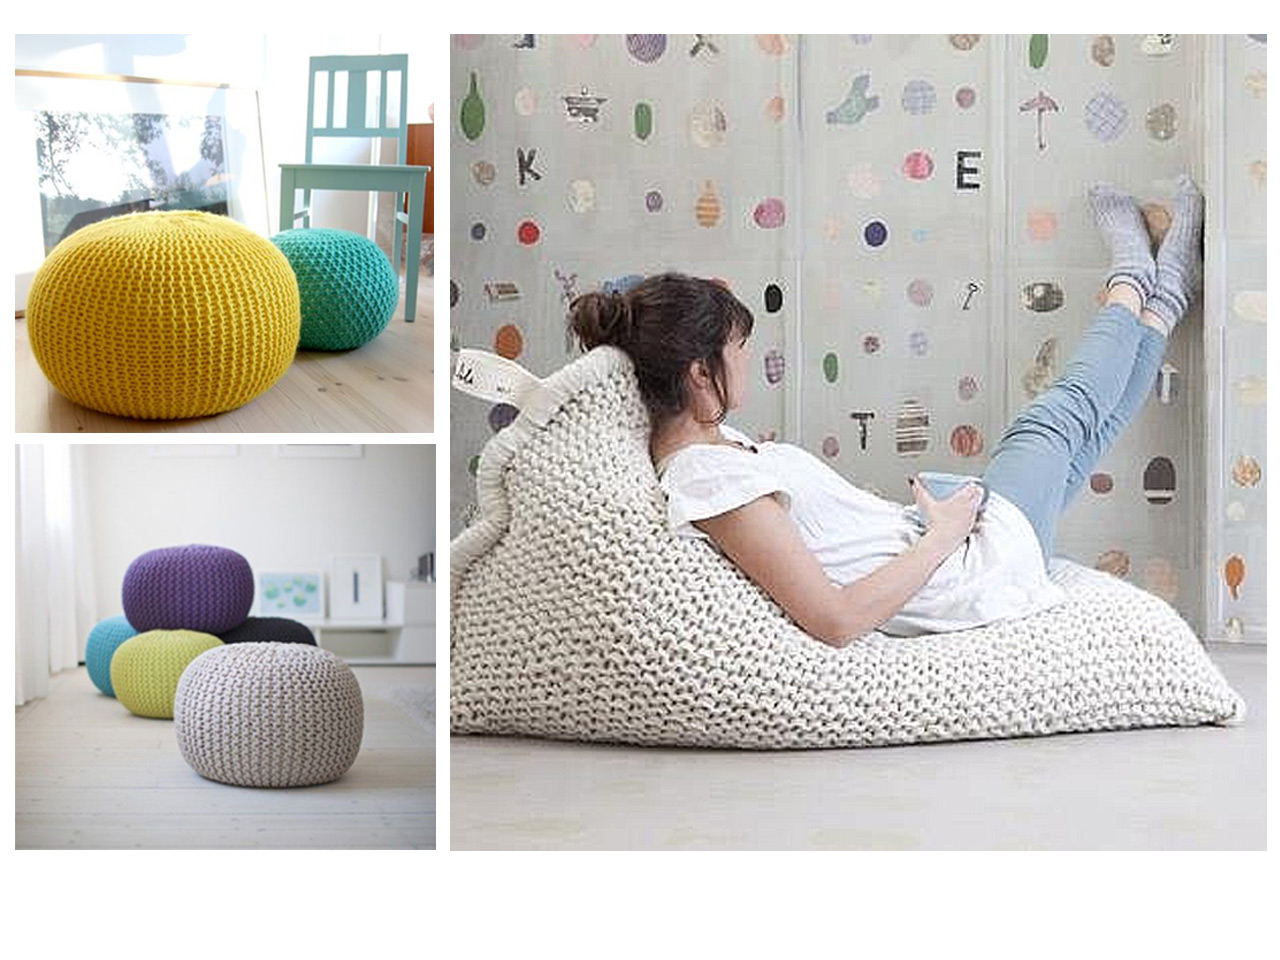 10 propuestas para decorar tu casa con crochet for Decorar cuadros